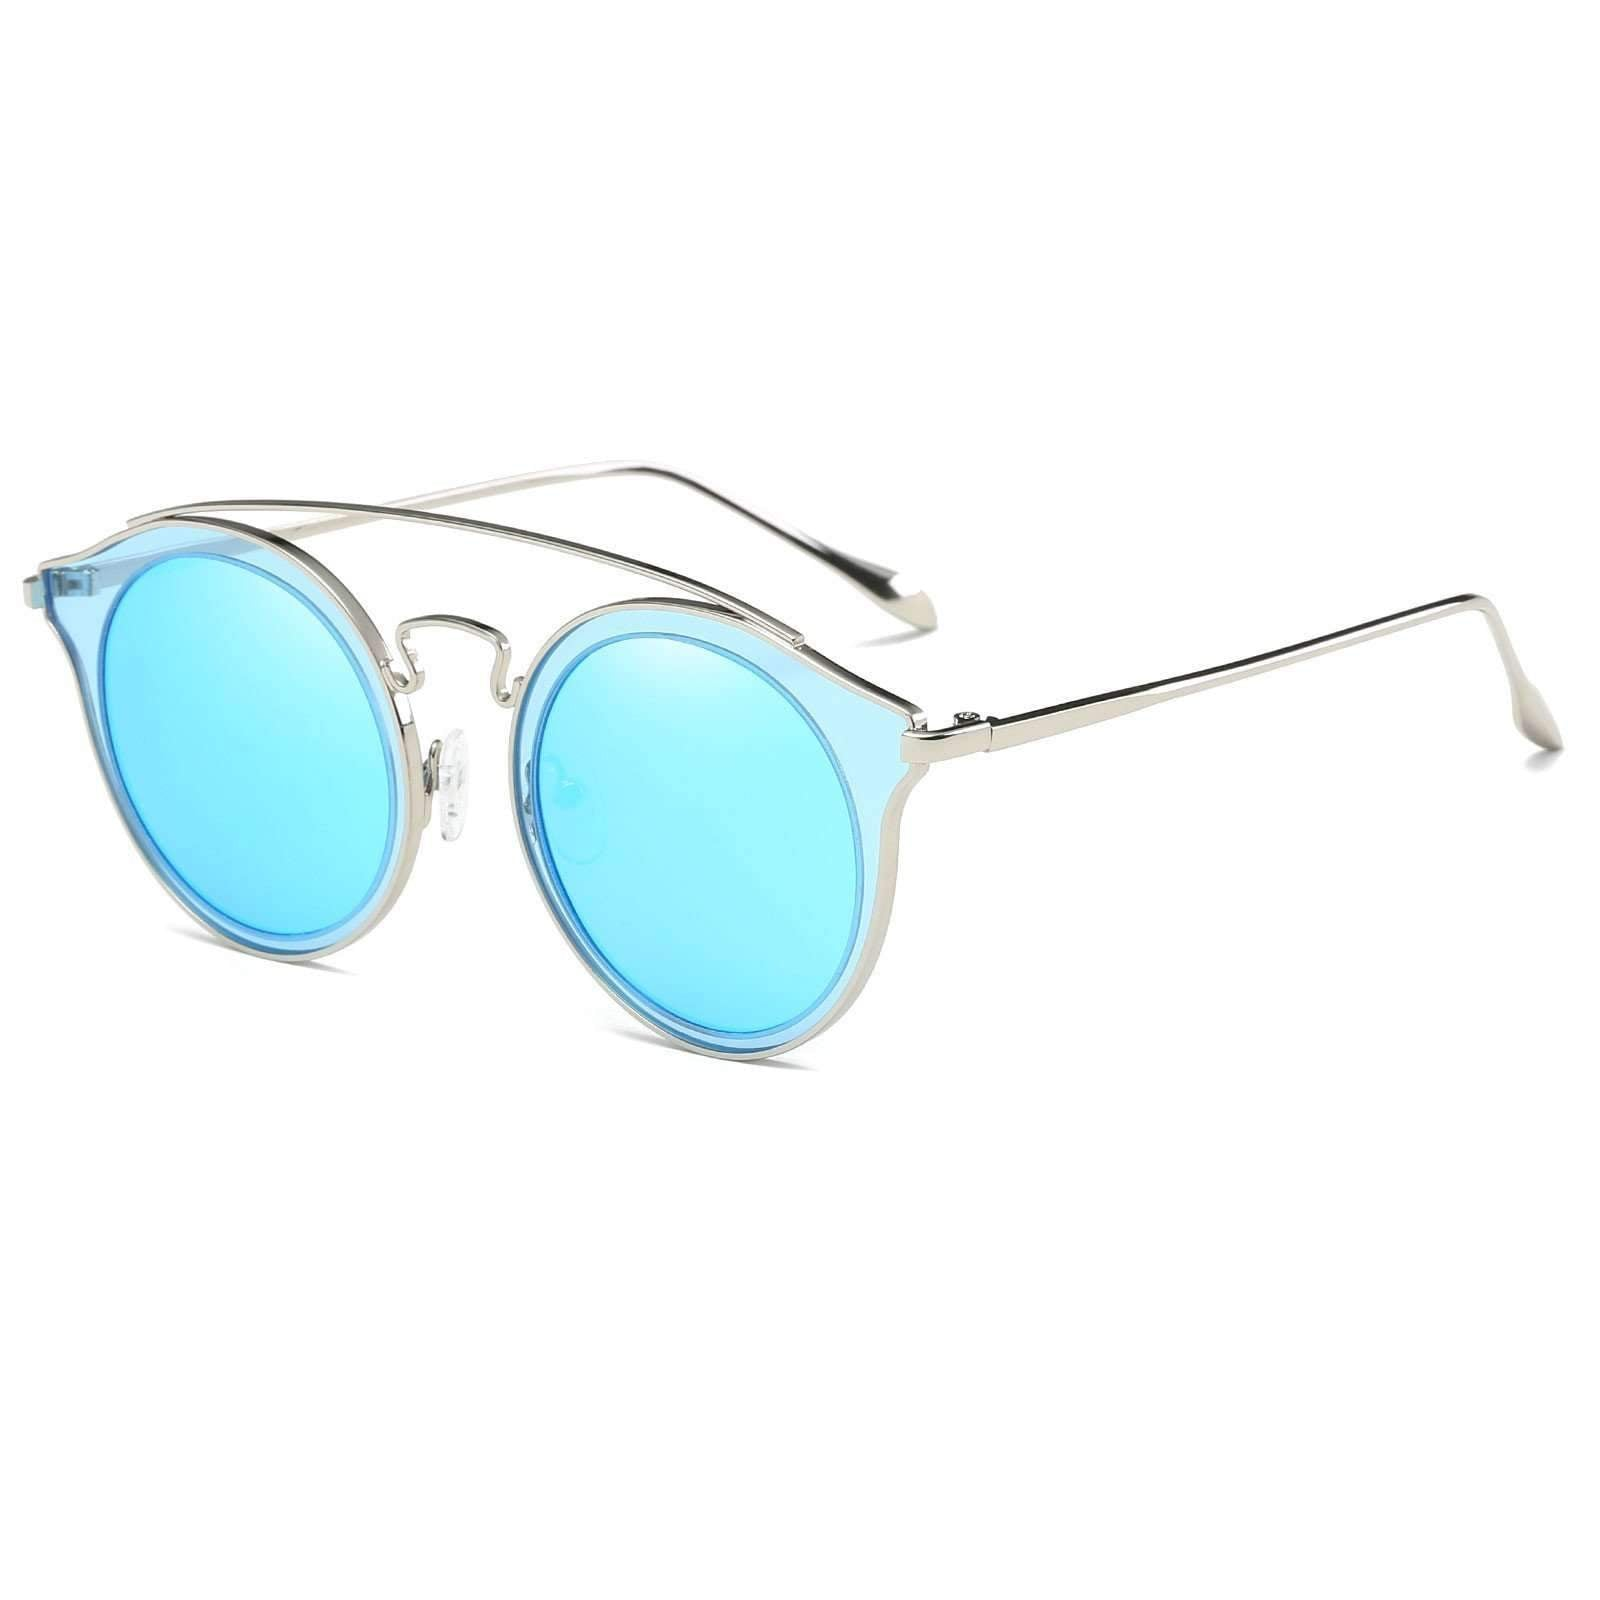 Double Bridged Polarized Lens Industrial Sunglasses